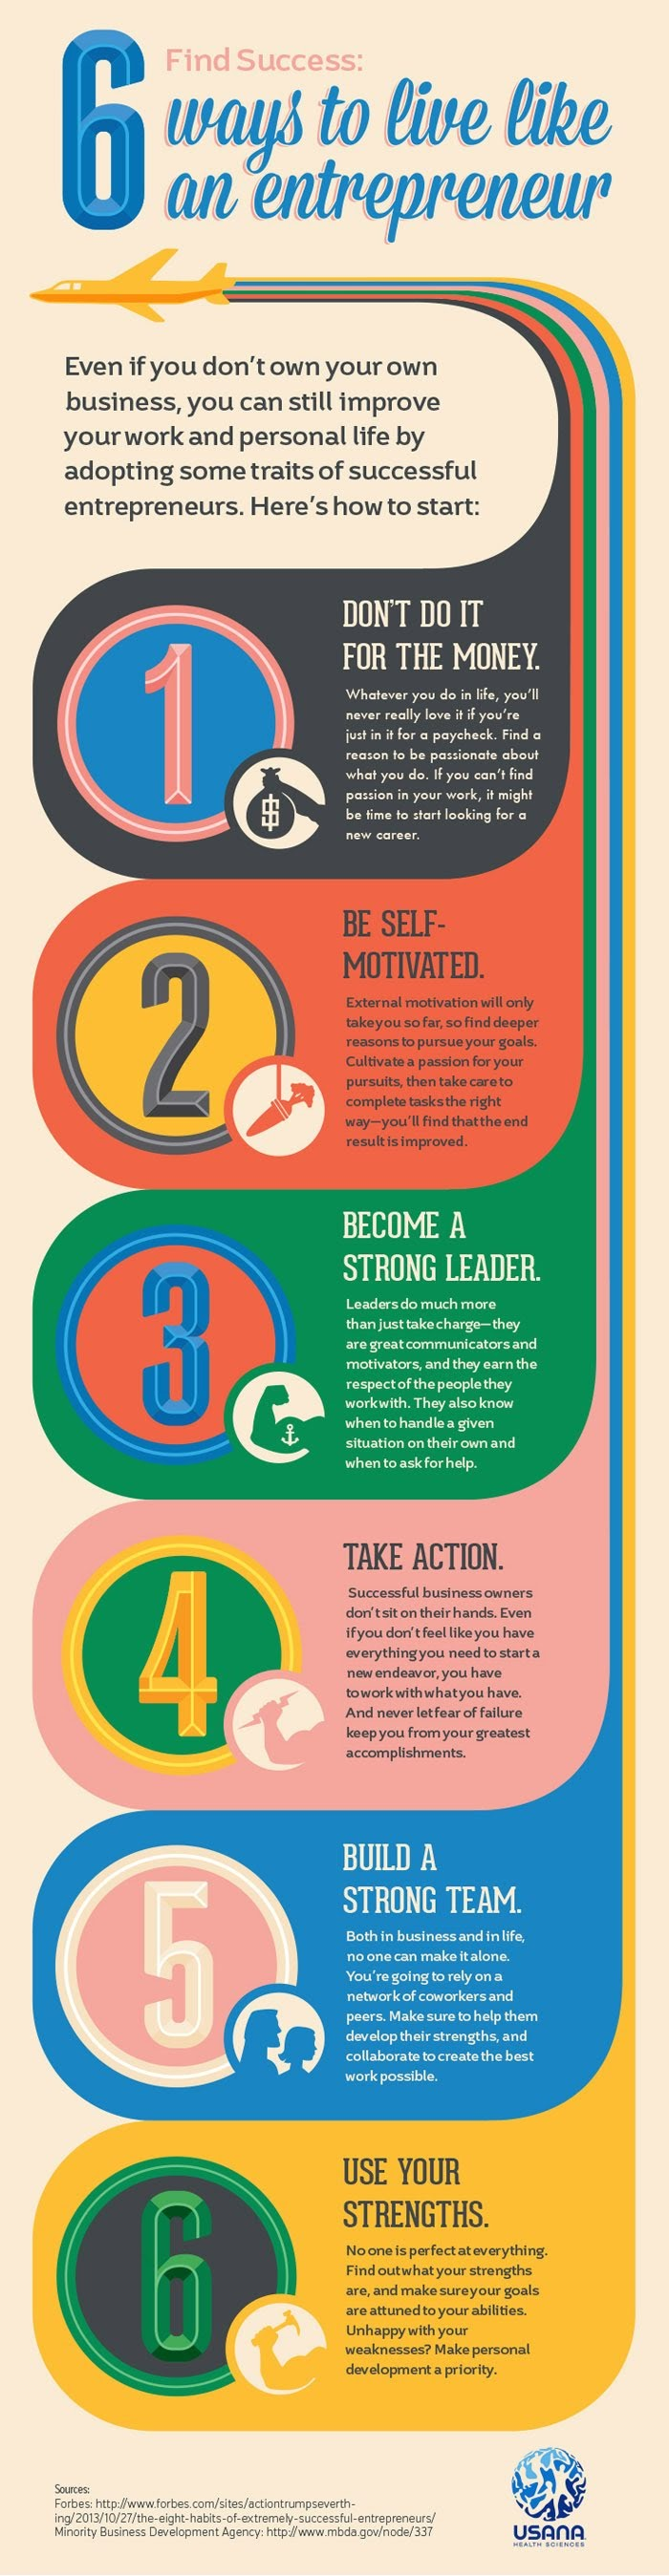 6 Ways to Live Like an Entrepreneur #Infographic